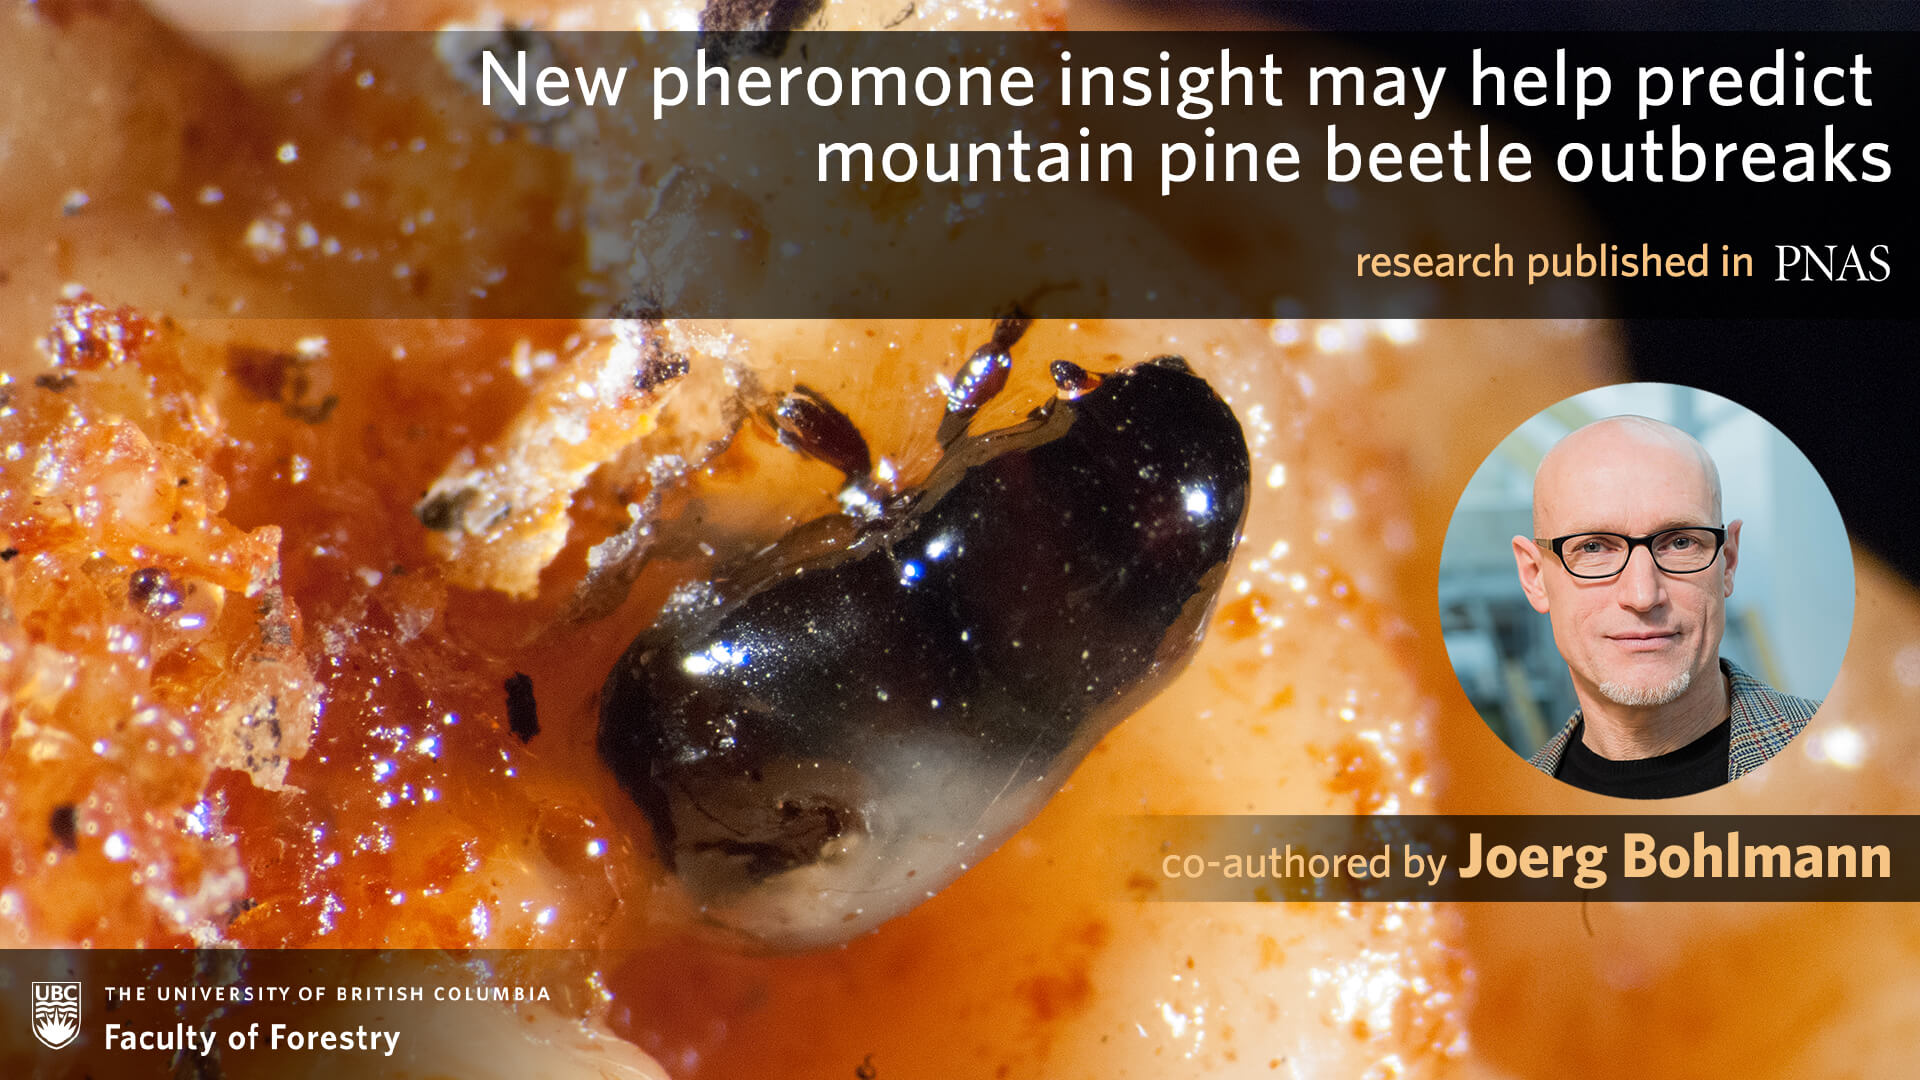 New Pheromone Insight may Help Predict Mountain Pine Beetle Outbreaks